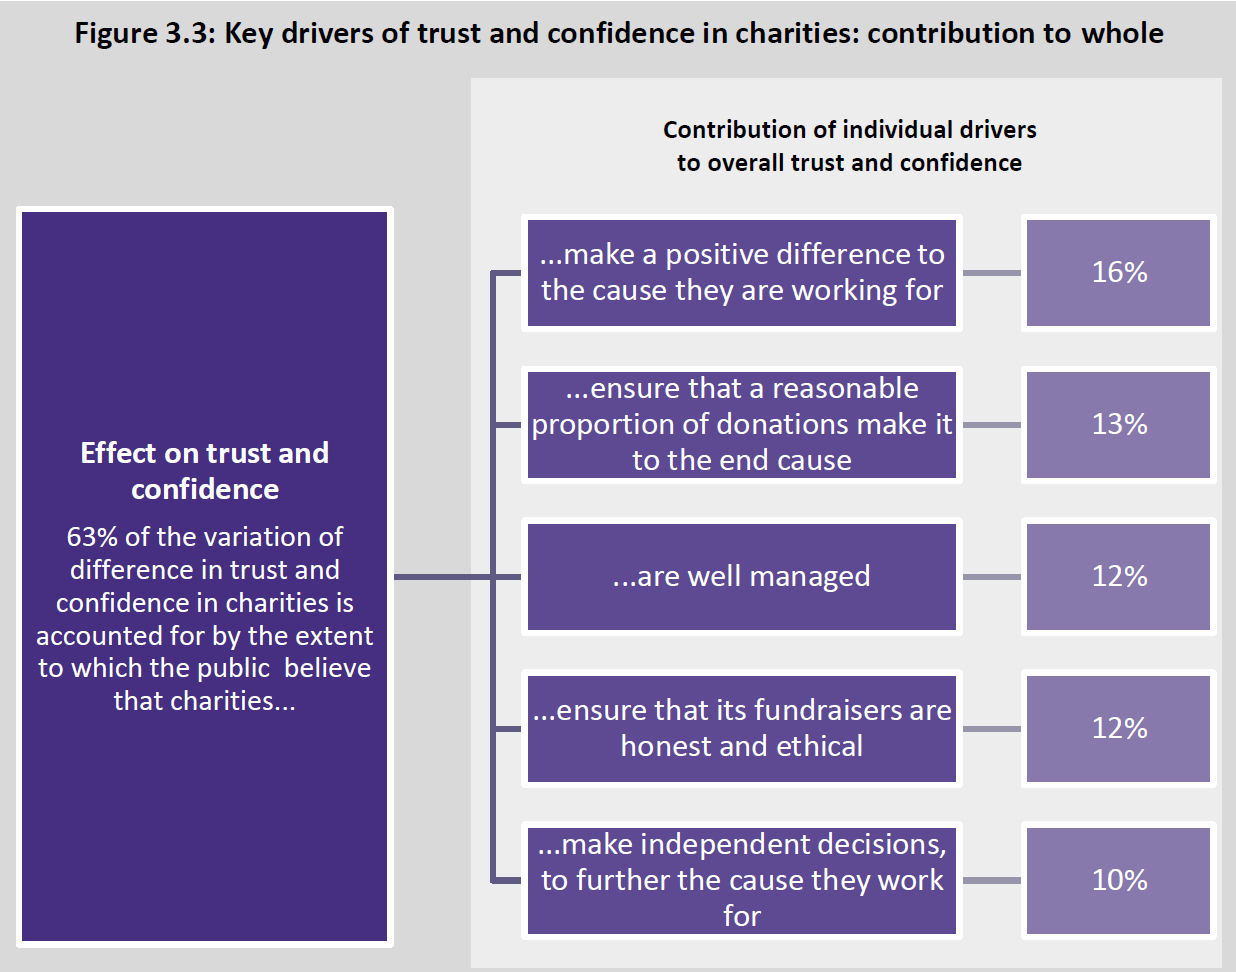 Drivers of Trust